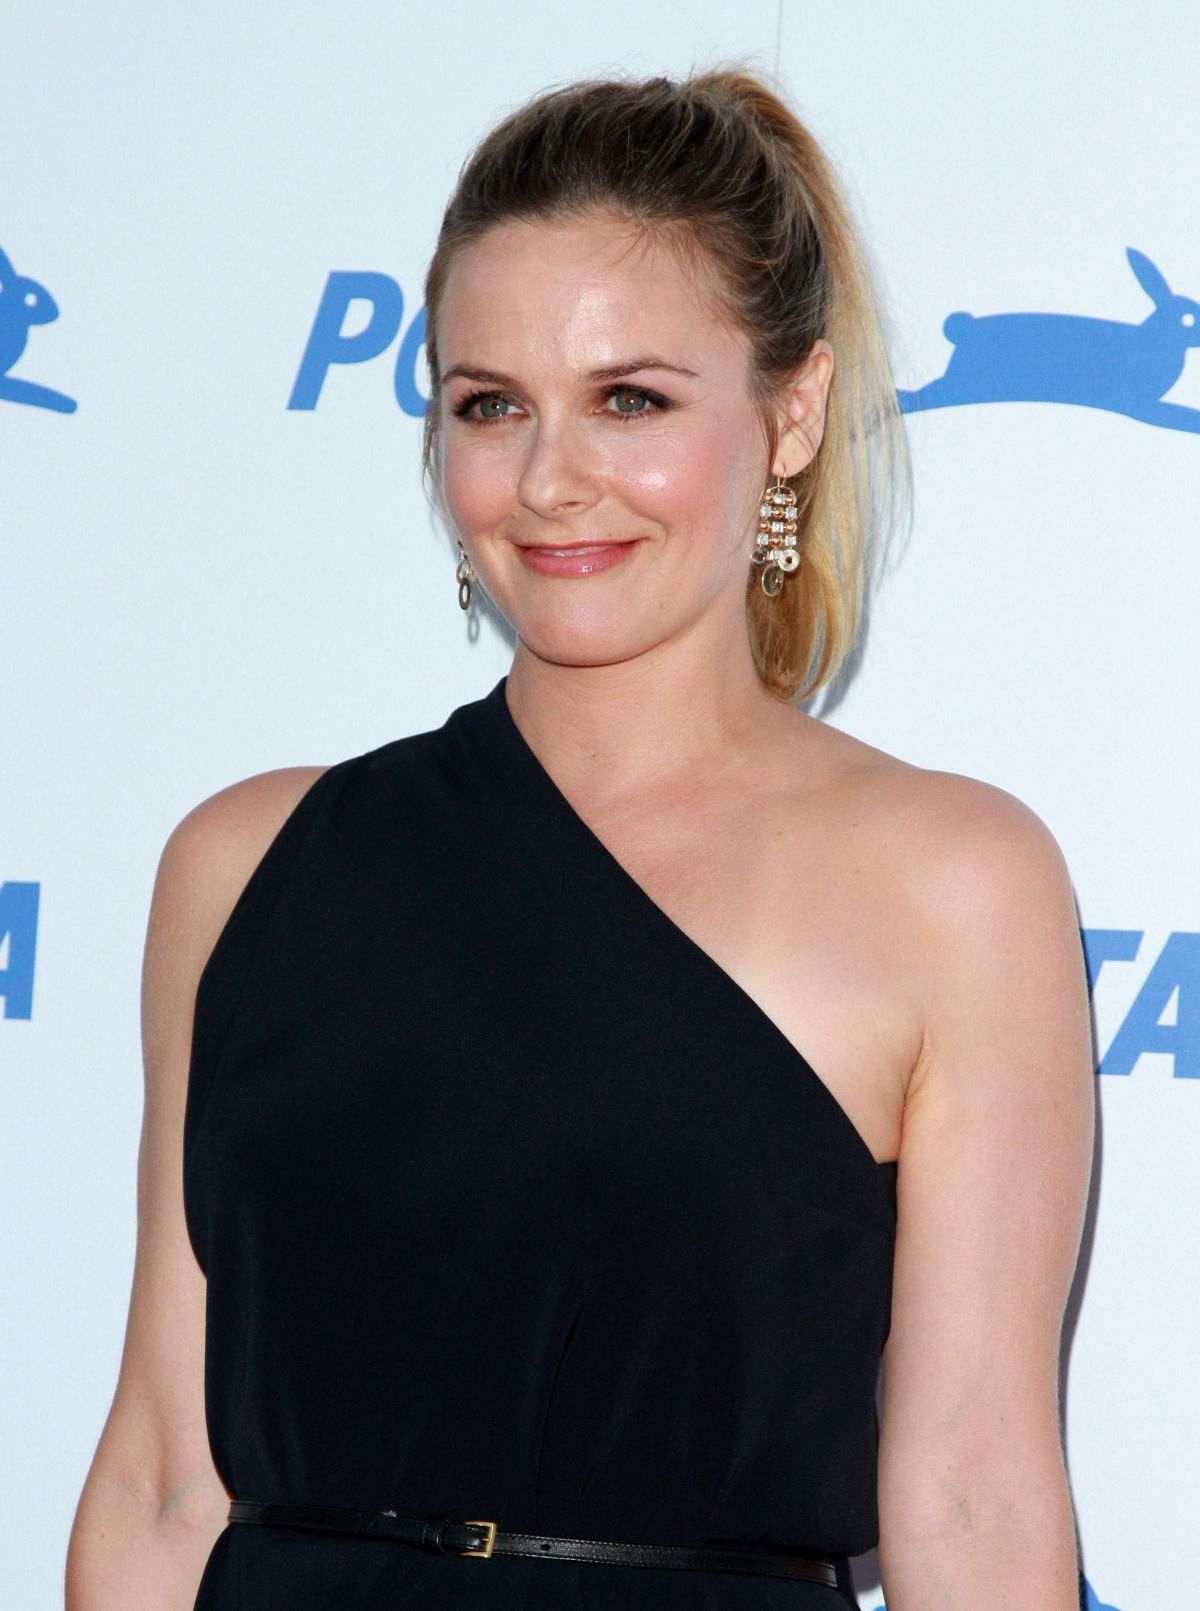 ALICIA SILVERSTONE at Peta's 35th Anniversary Party in Los Angeles 09/30/2015